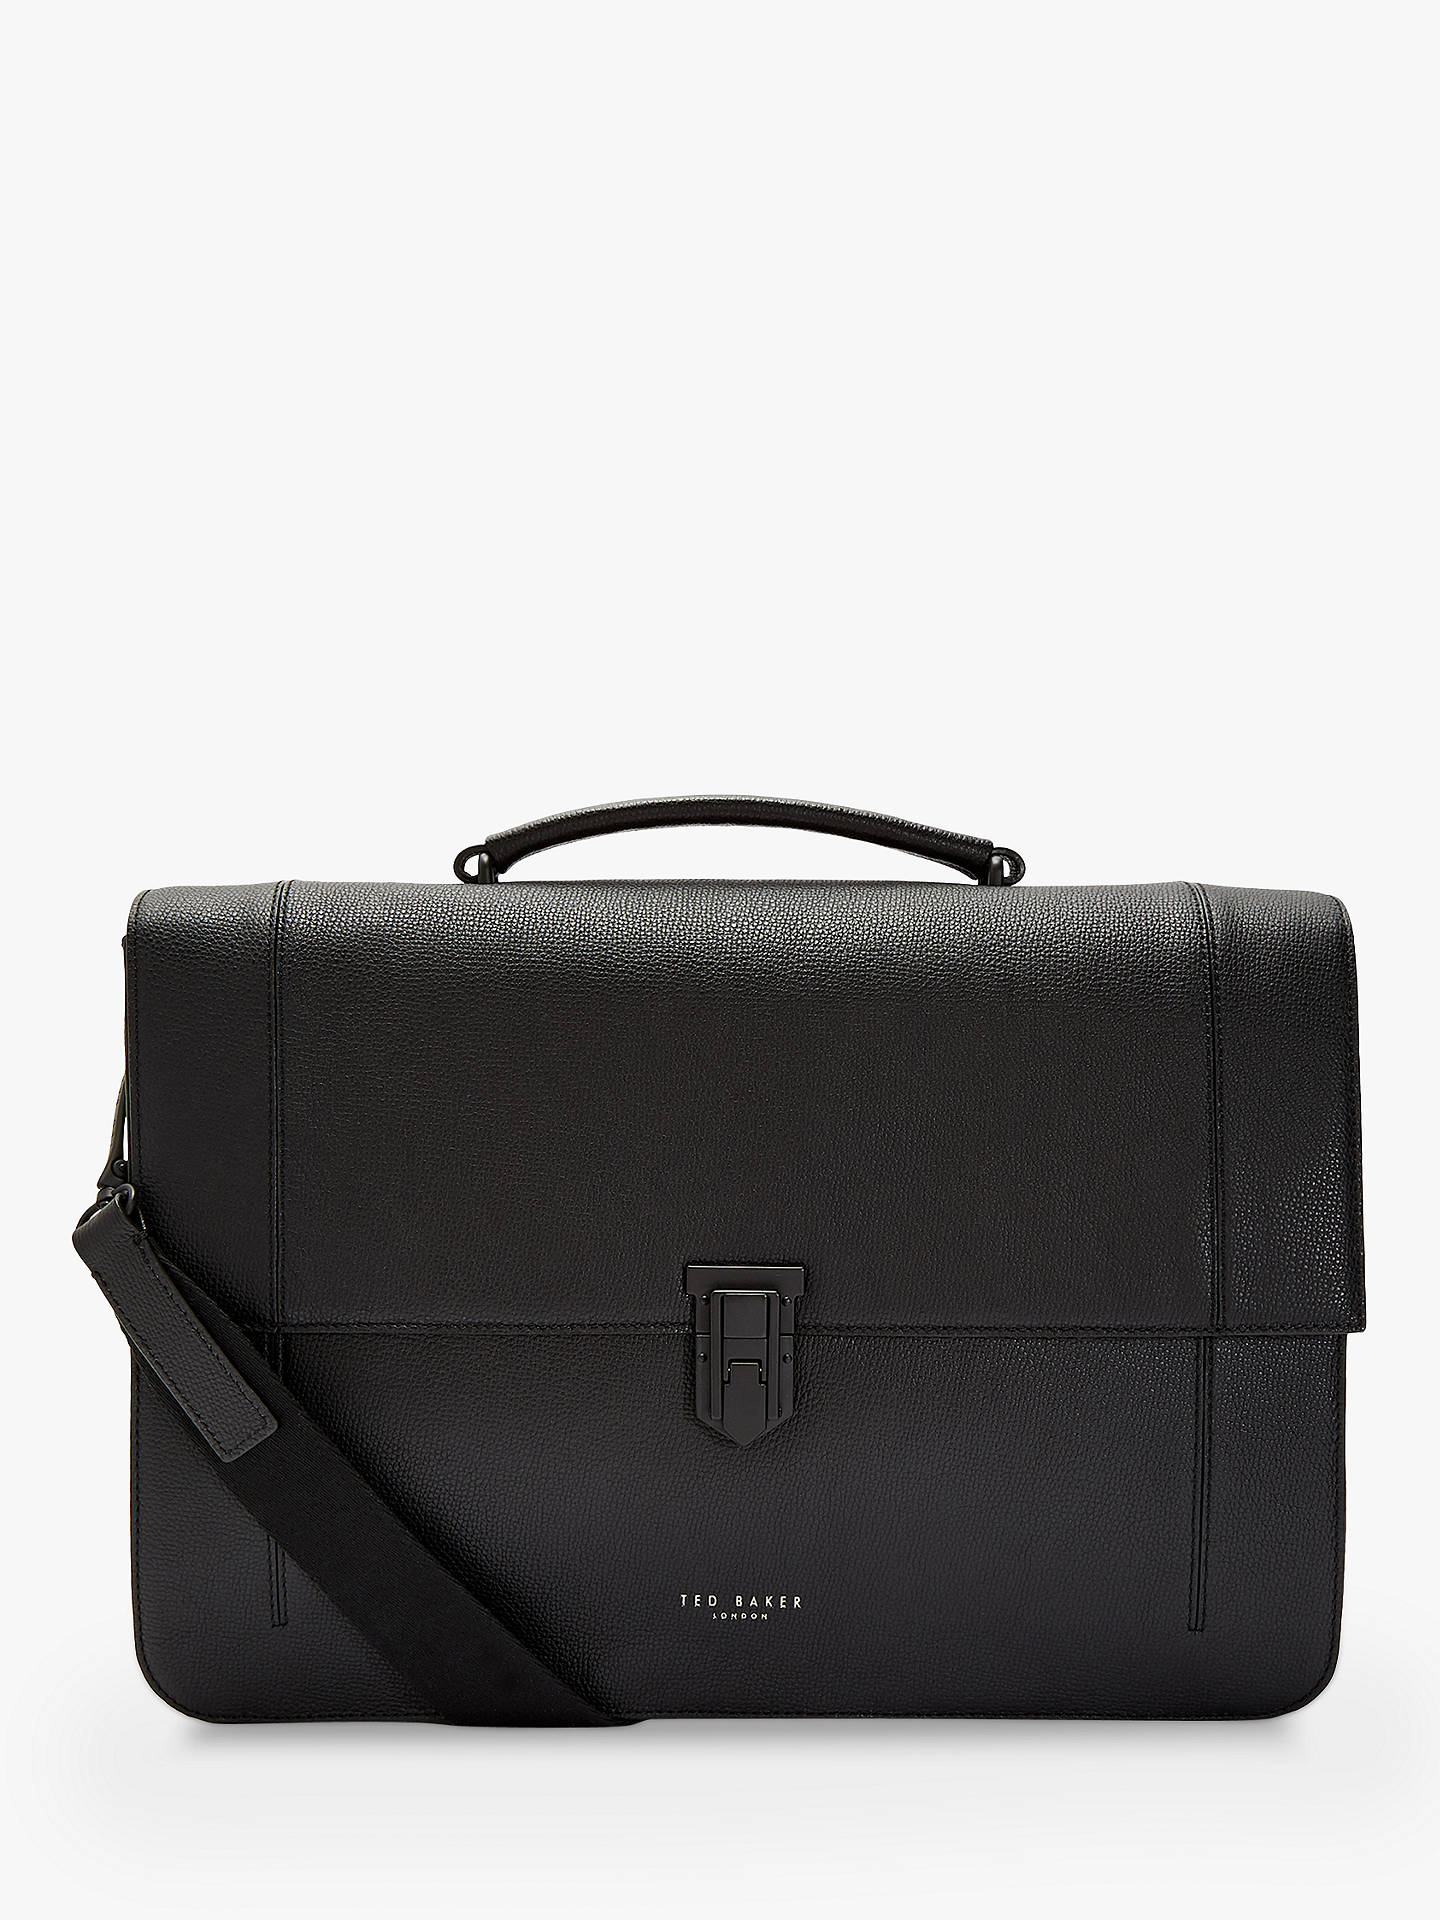 5cbb910d82c4 Buy Ted Baker Aggro Leather Briefcase